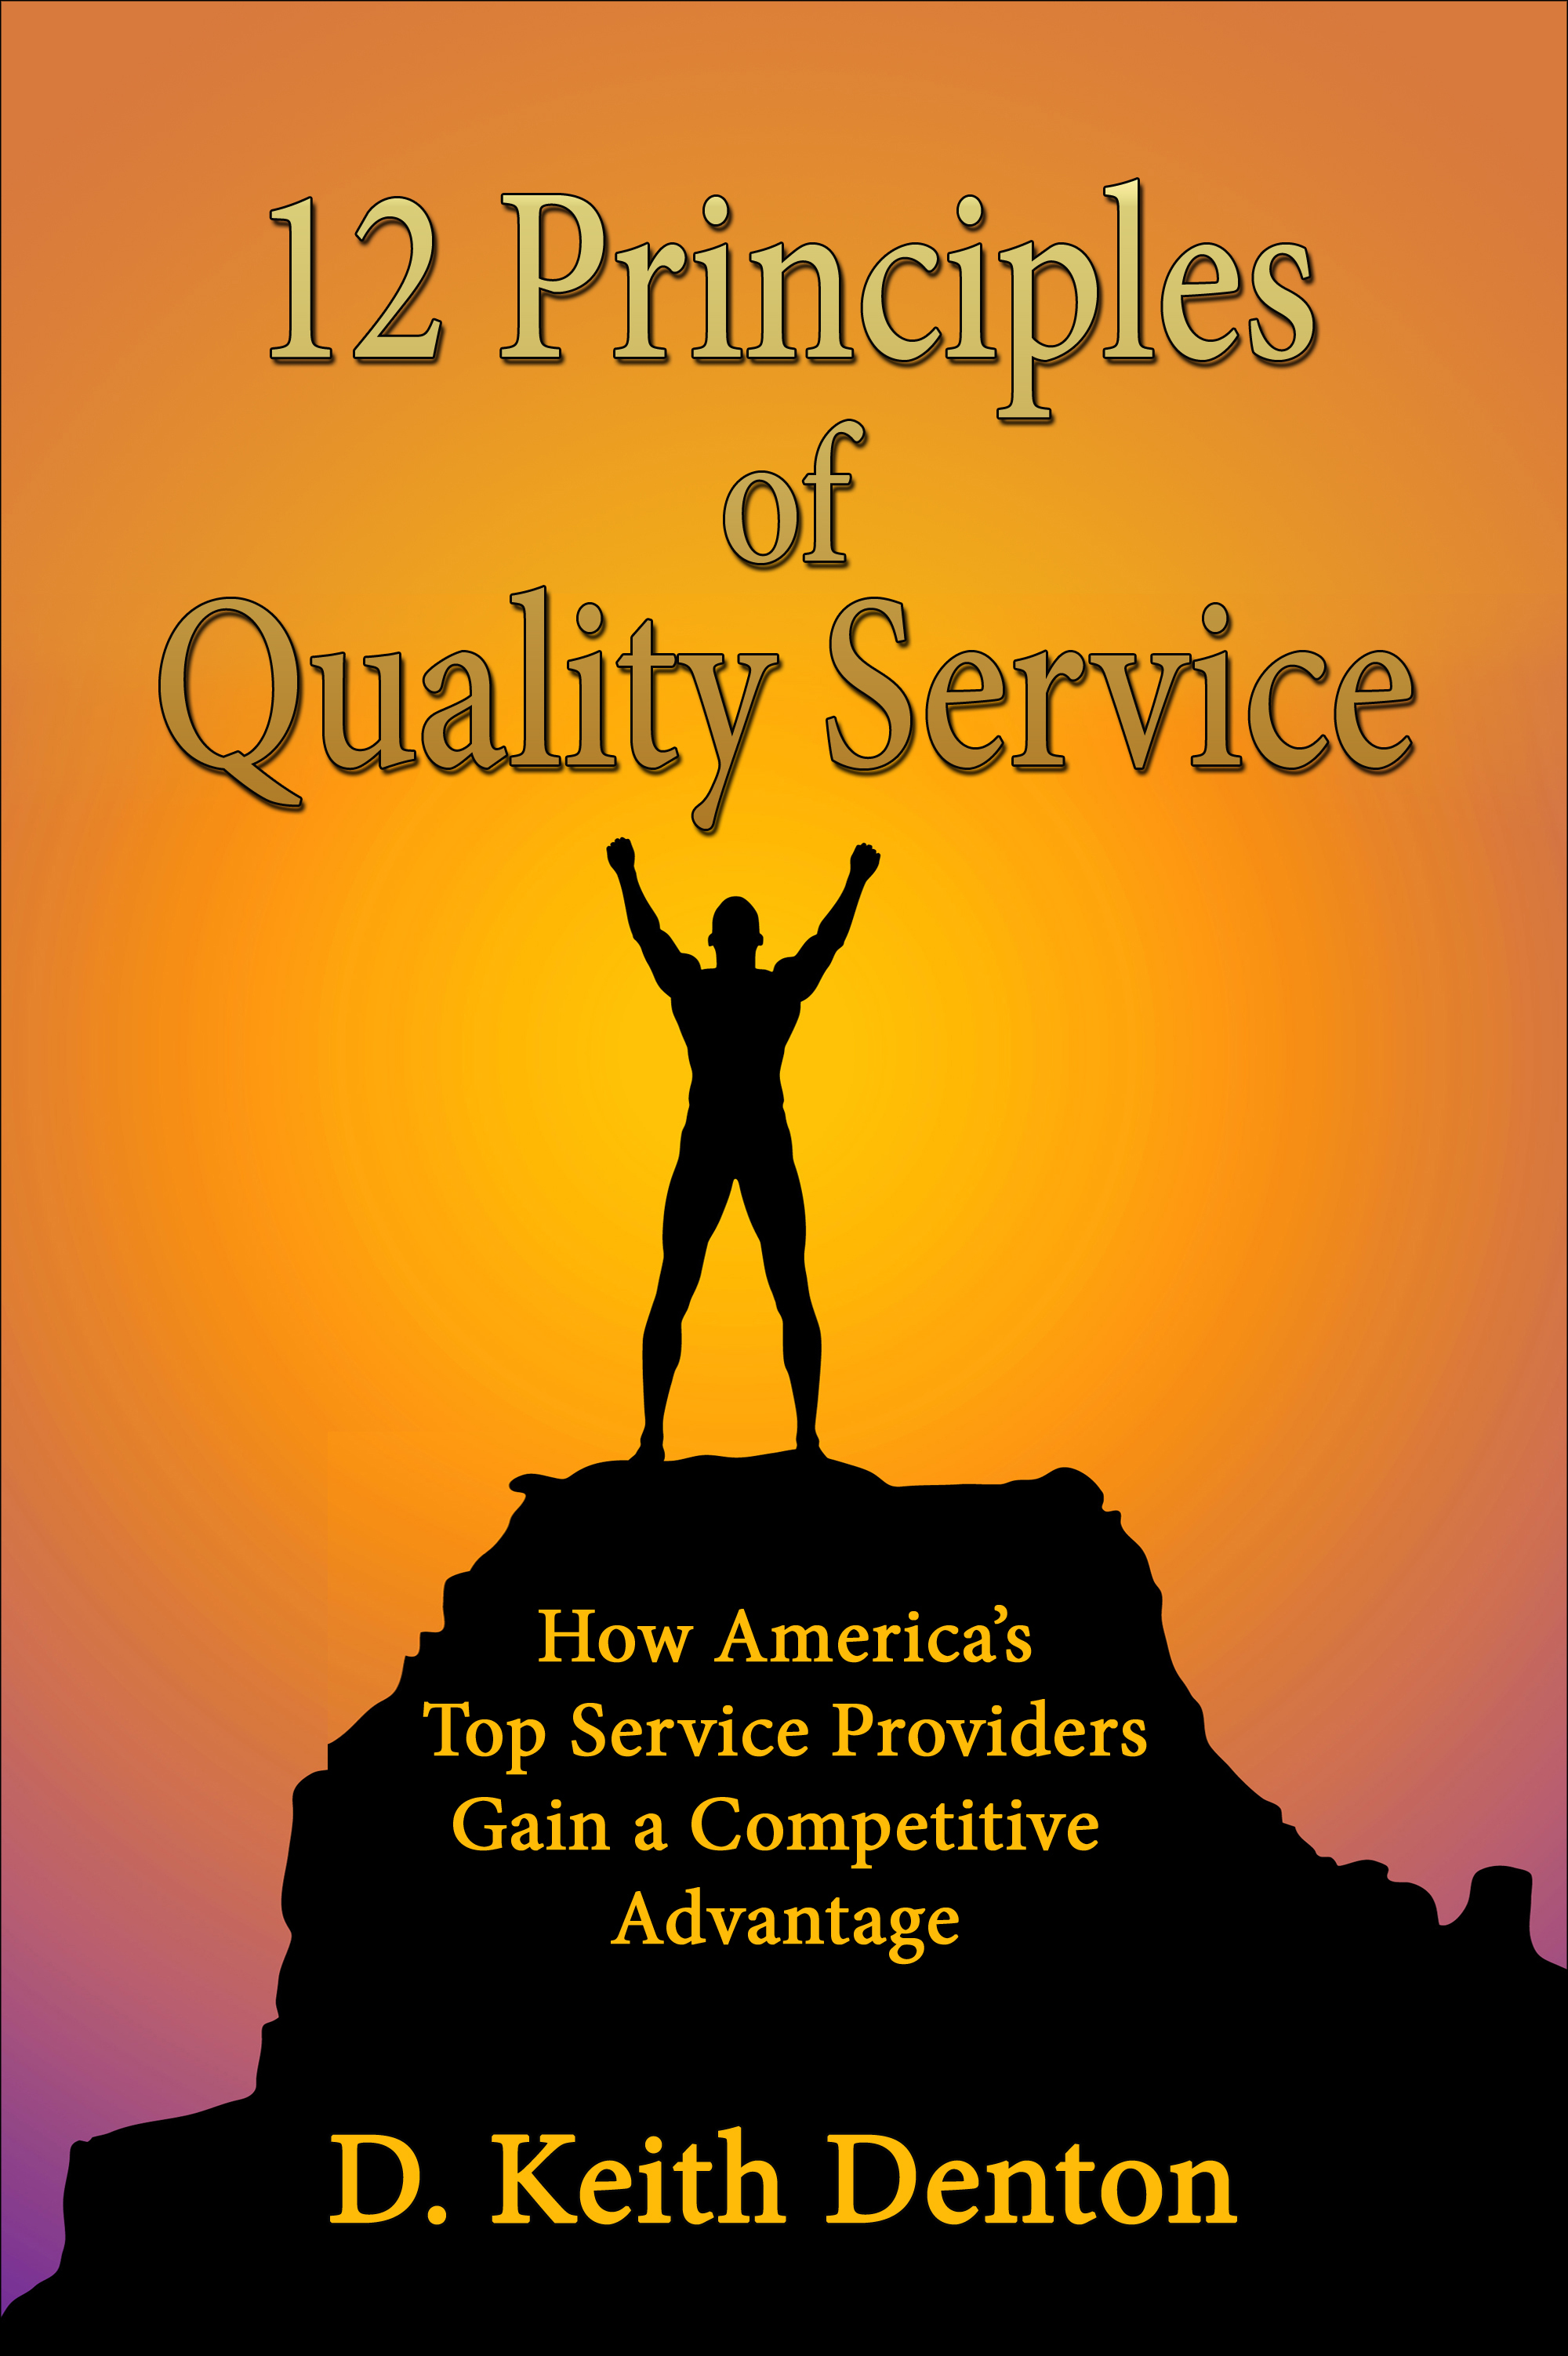 12 PRINCIPLES of QUALITY SERVICE: How America's Top Service Providers Gain A Competitive Advantage